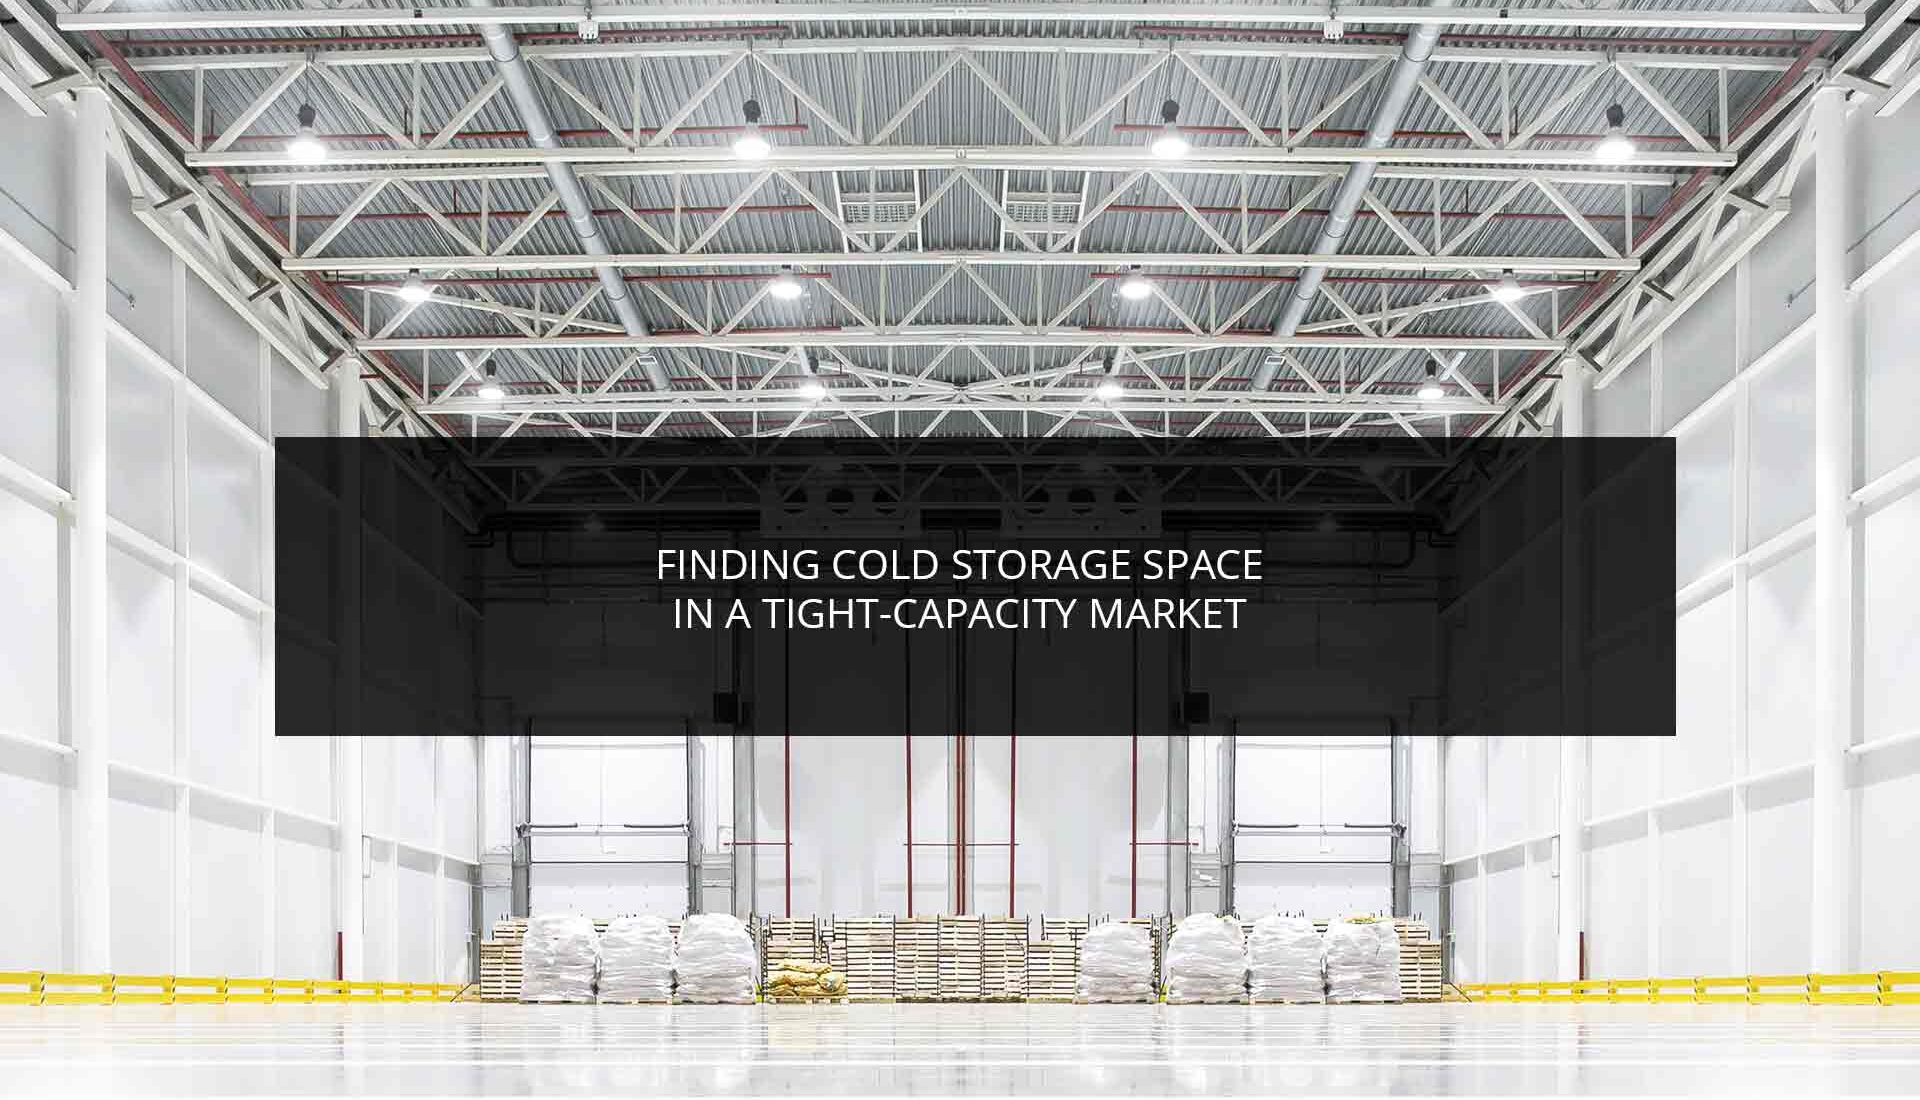 Finding Cold Storage Space in a Tight-Capacity Market